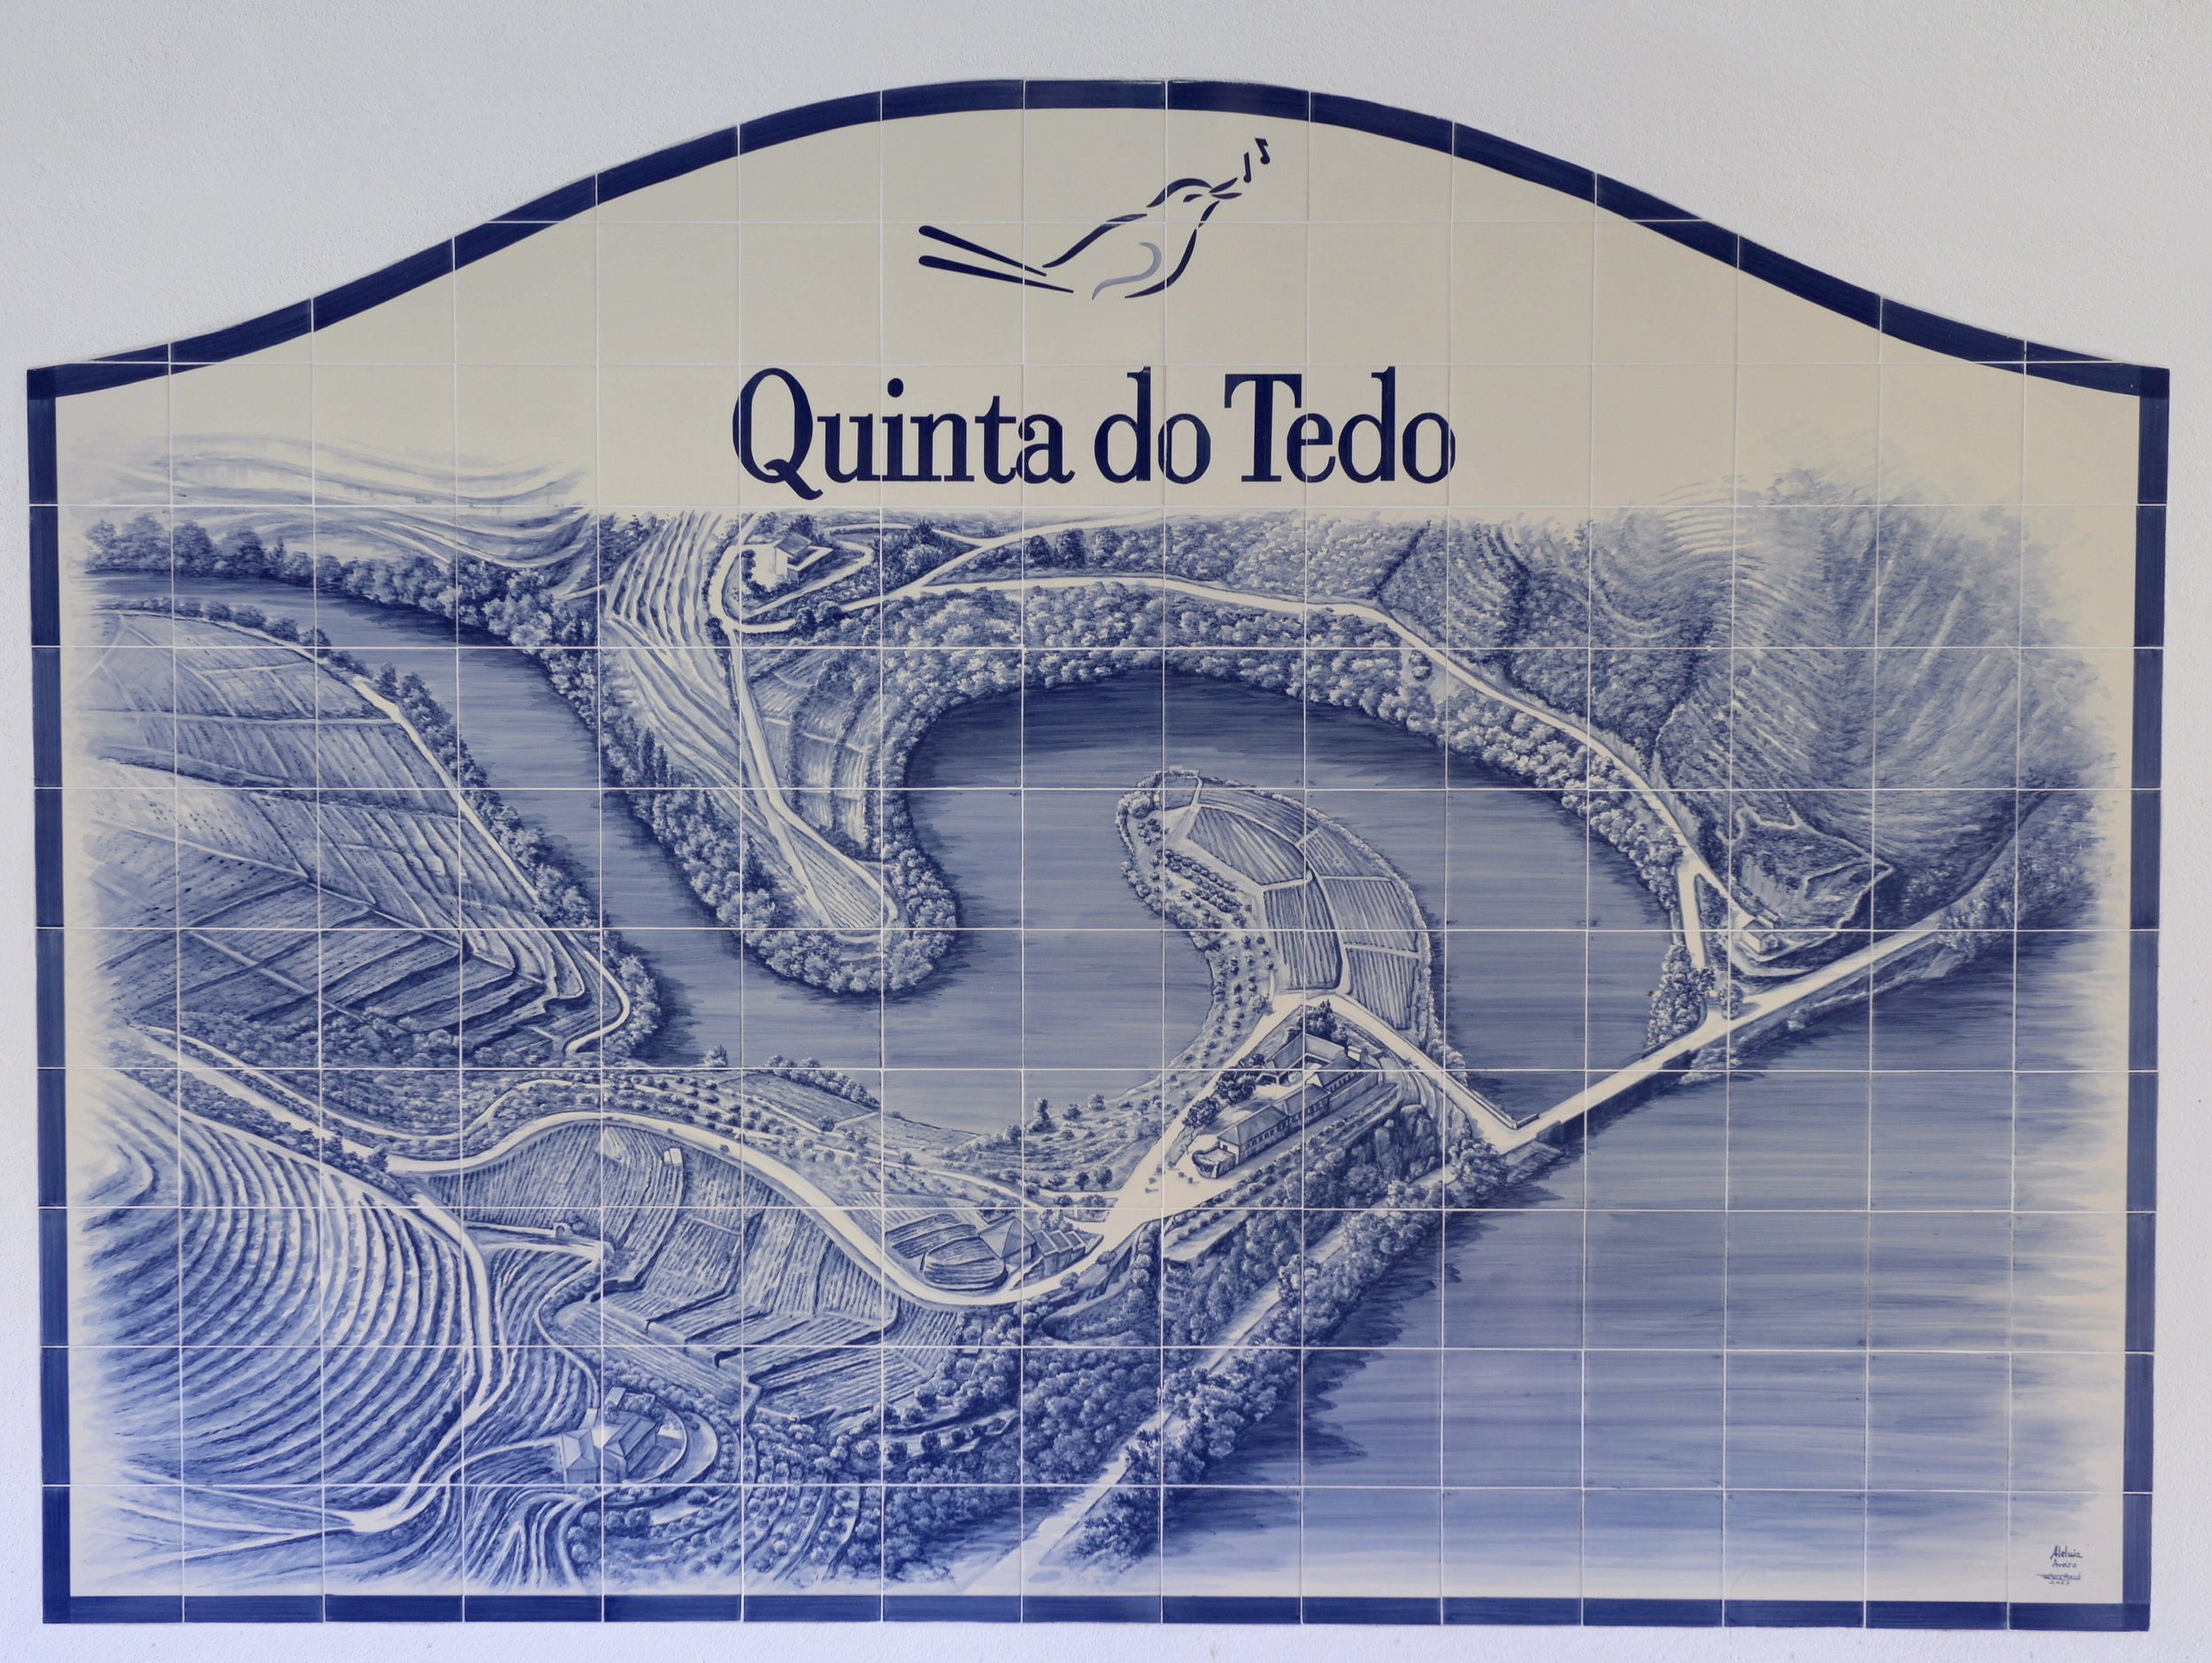 Aerial view of Quinta do Tedo.